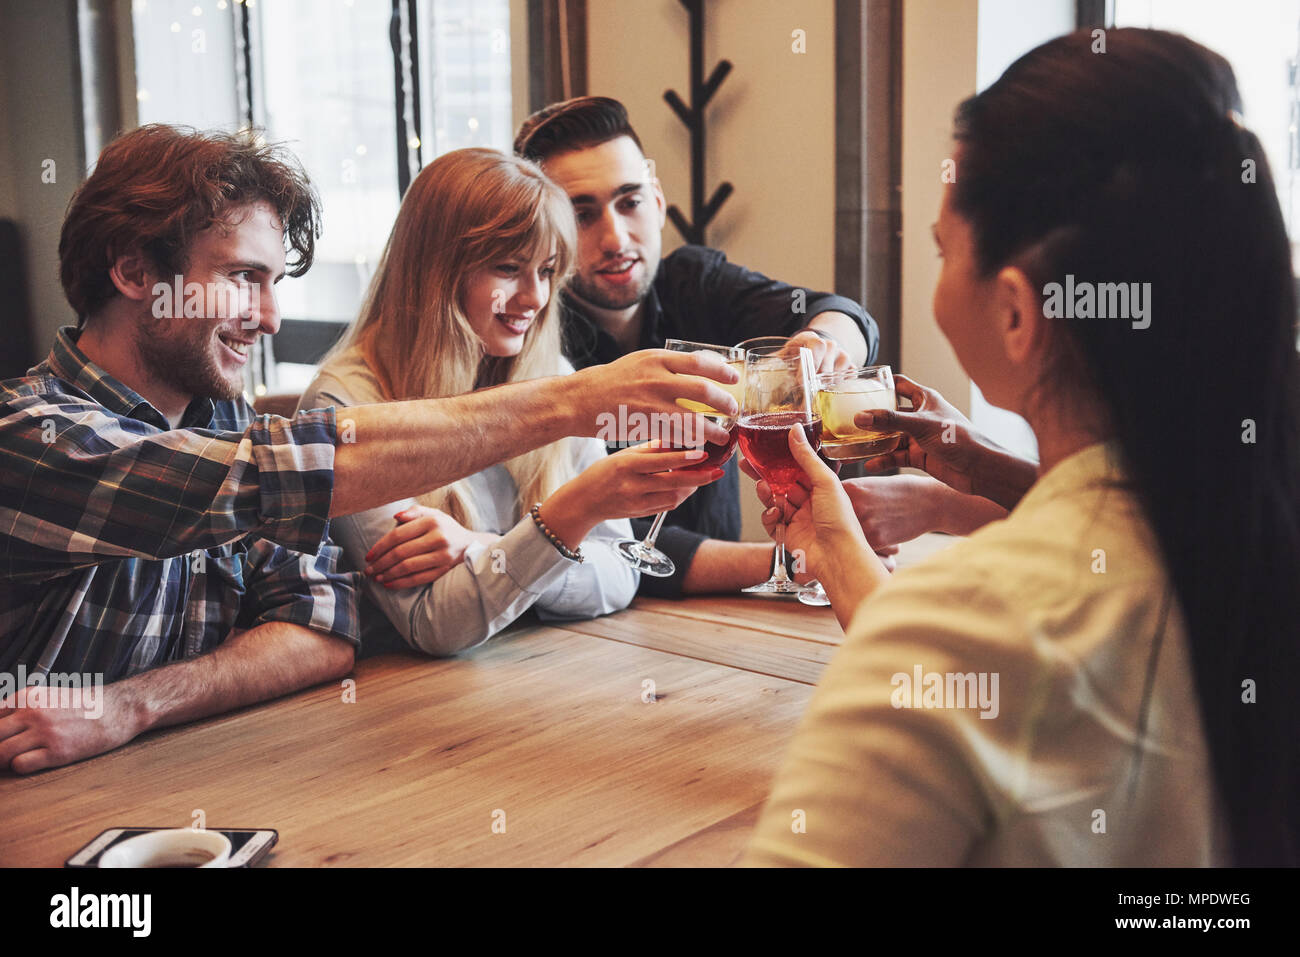 Group of young friends having fun and laughing while dining at table in restaurant - Stock Image